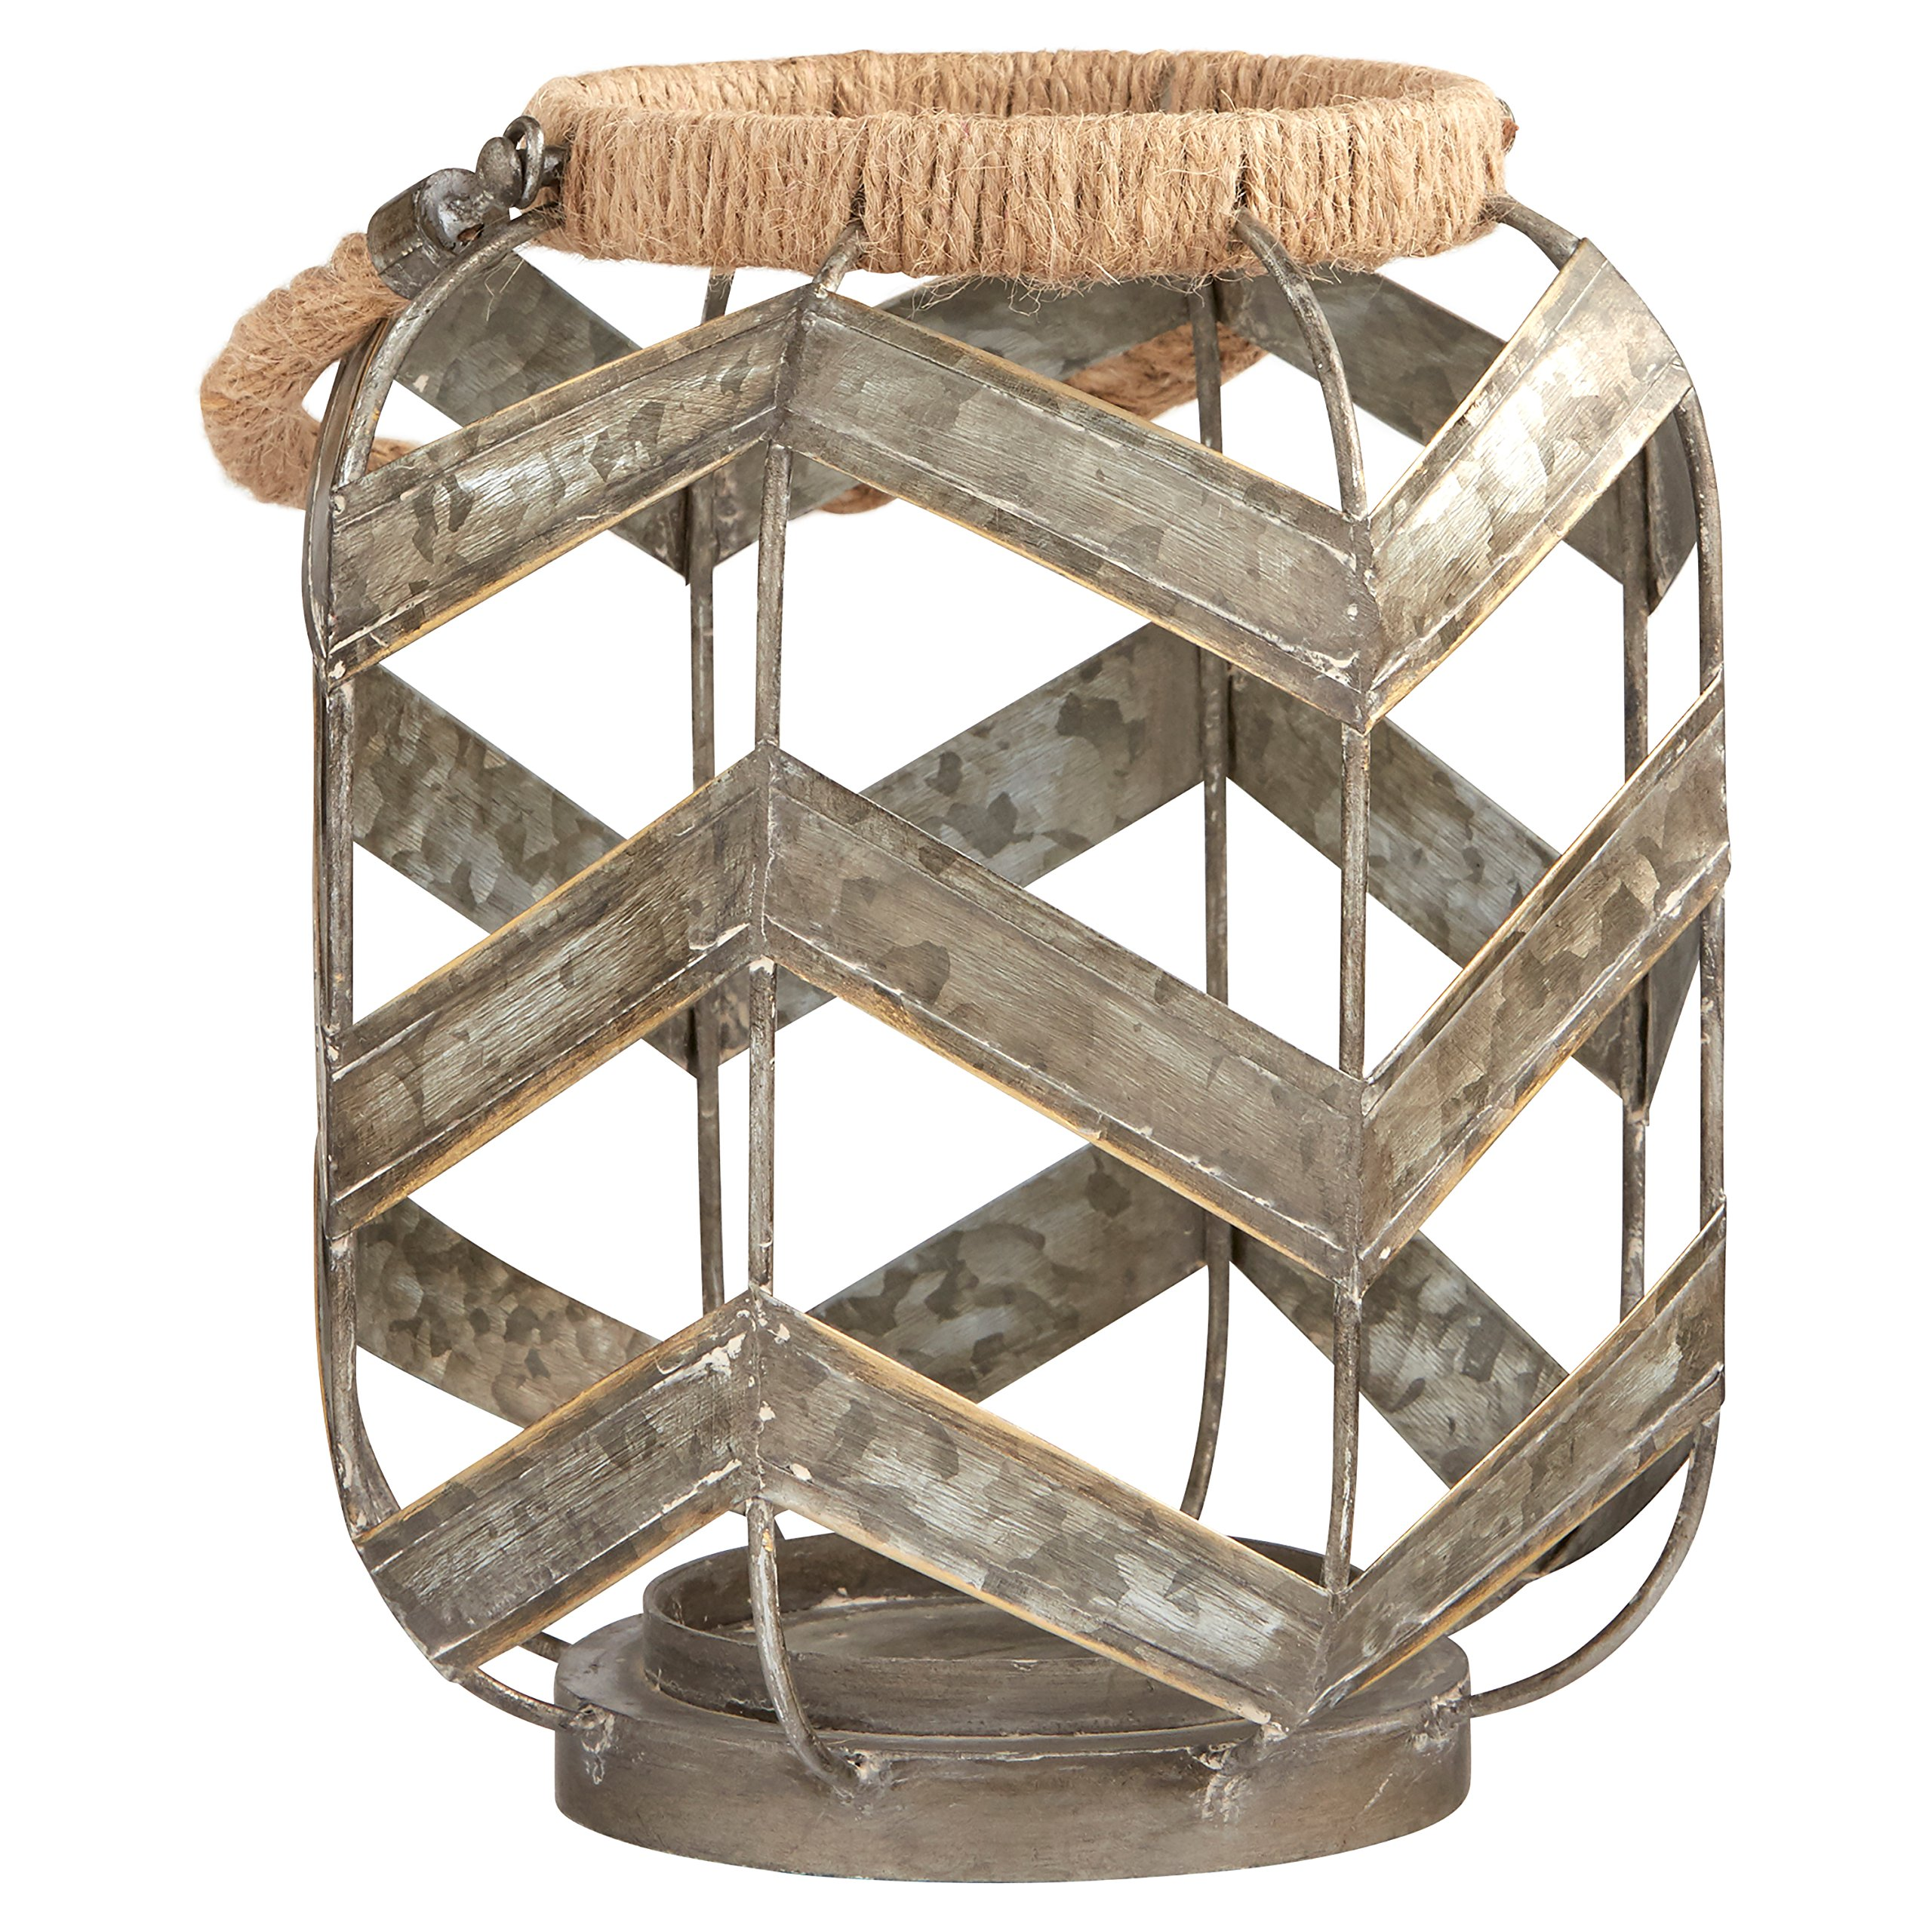 Stone & Beam Vintage Farmhouse Metal and Rope Decorative Candle Holder, 16.25'' H, Grey